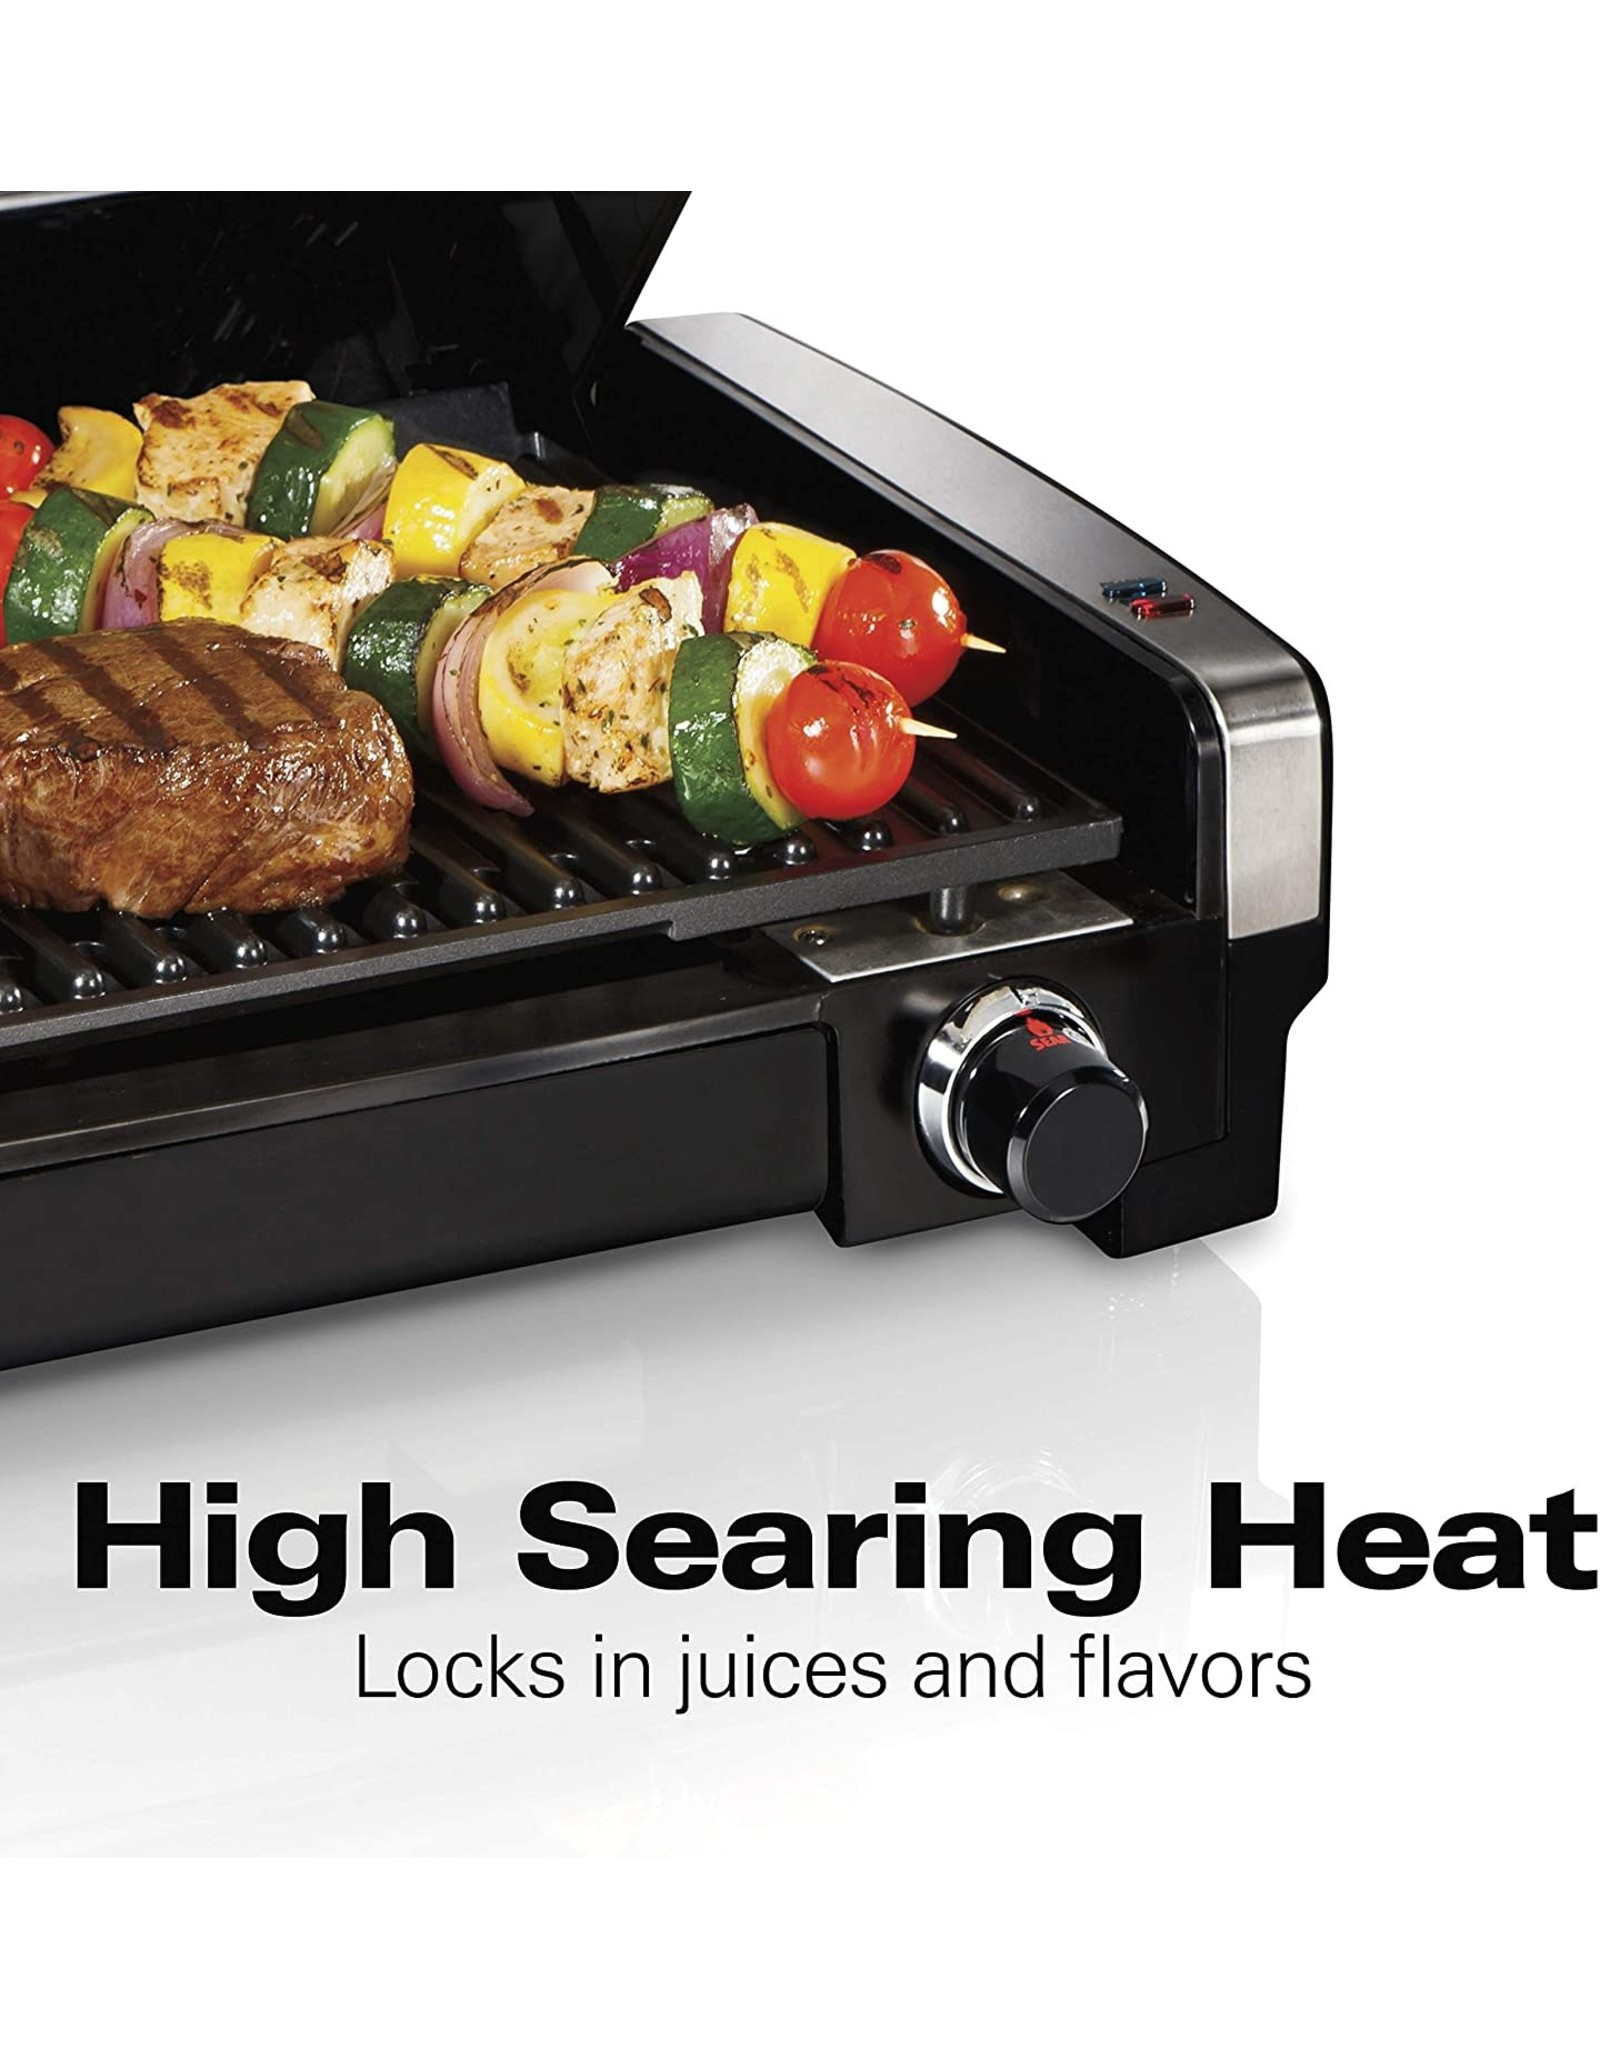 Hamilton Beach Hamilton Beach Electric Indoor Searing Grill with Viewing Window and Removable Easy-to-Clean Nonstick Plate, 6-Serving, Extra-Large Drip Tray, Stainless Steel (25361)